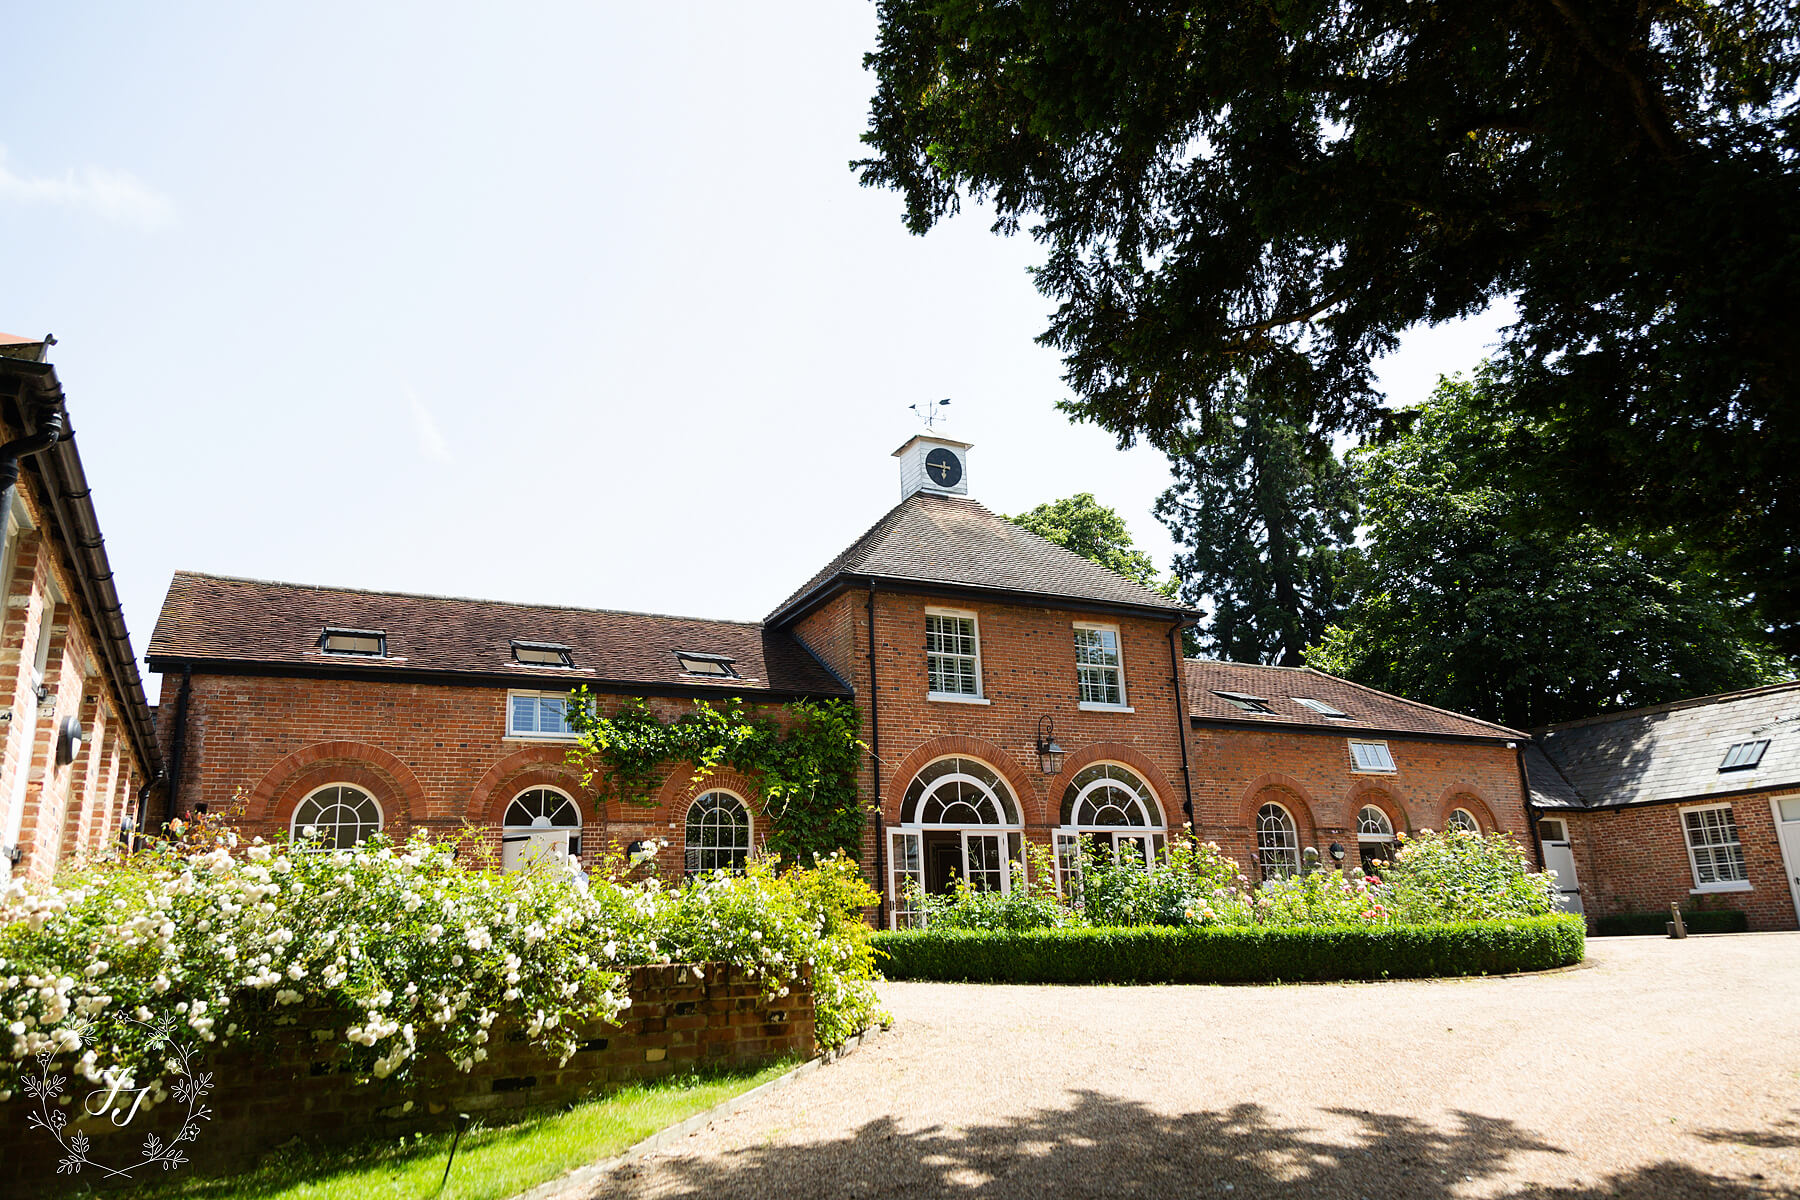 The Coach House at Gaynes Park